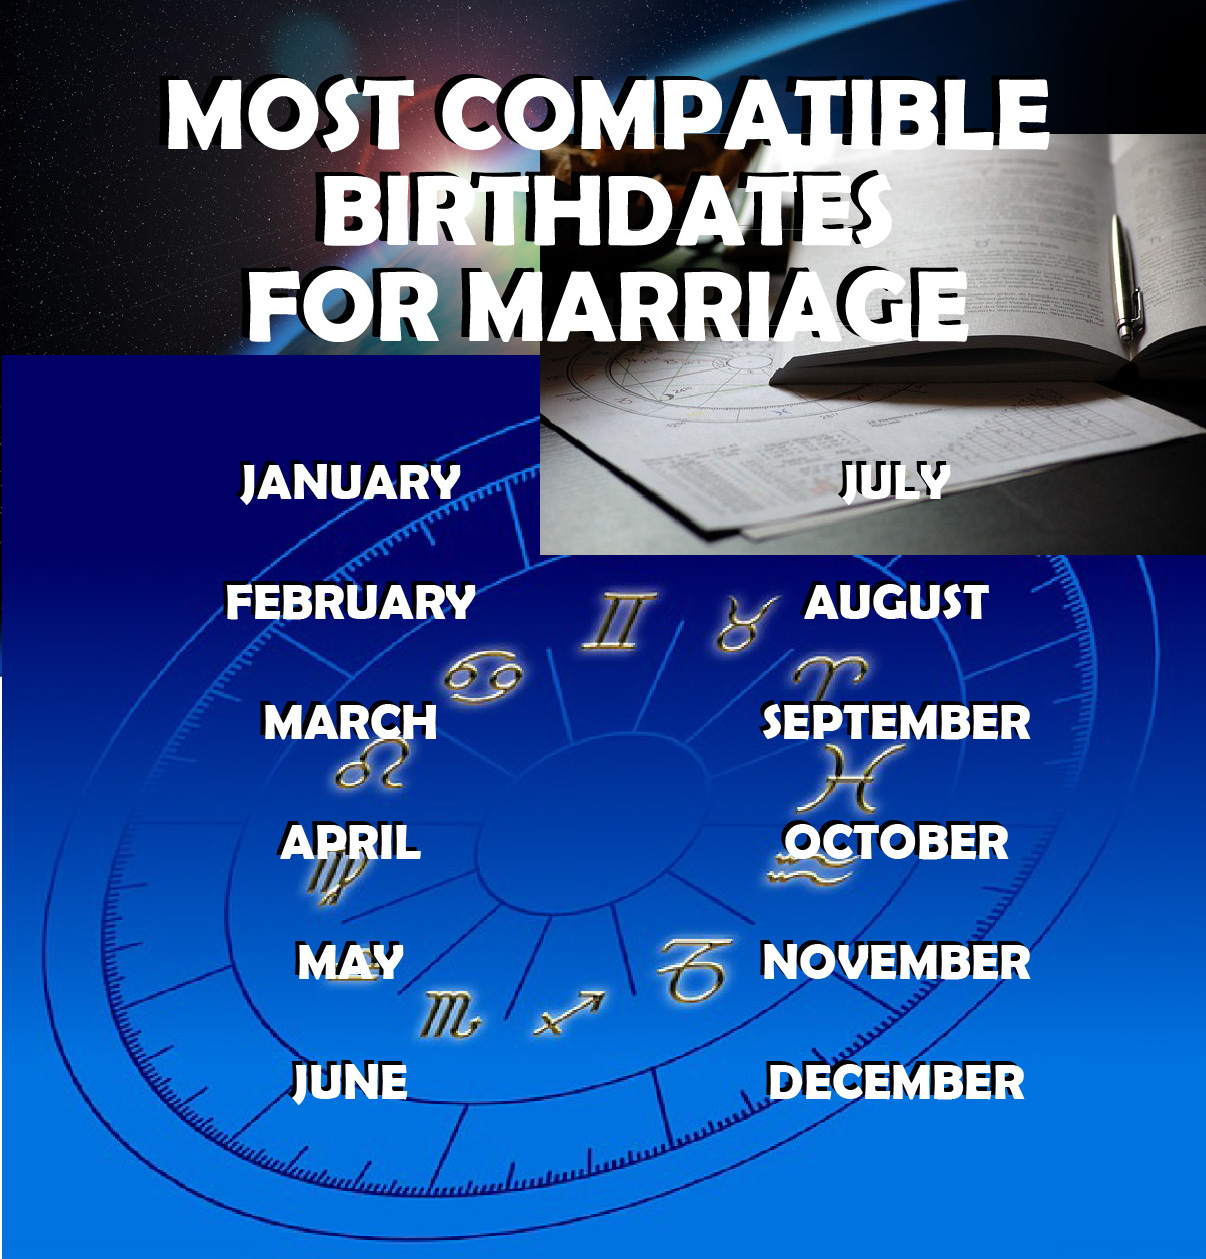 give you a personalized list of the most compatible birthdates for potential mates to seek out for marriage